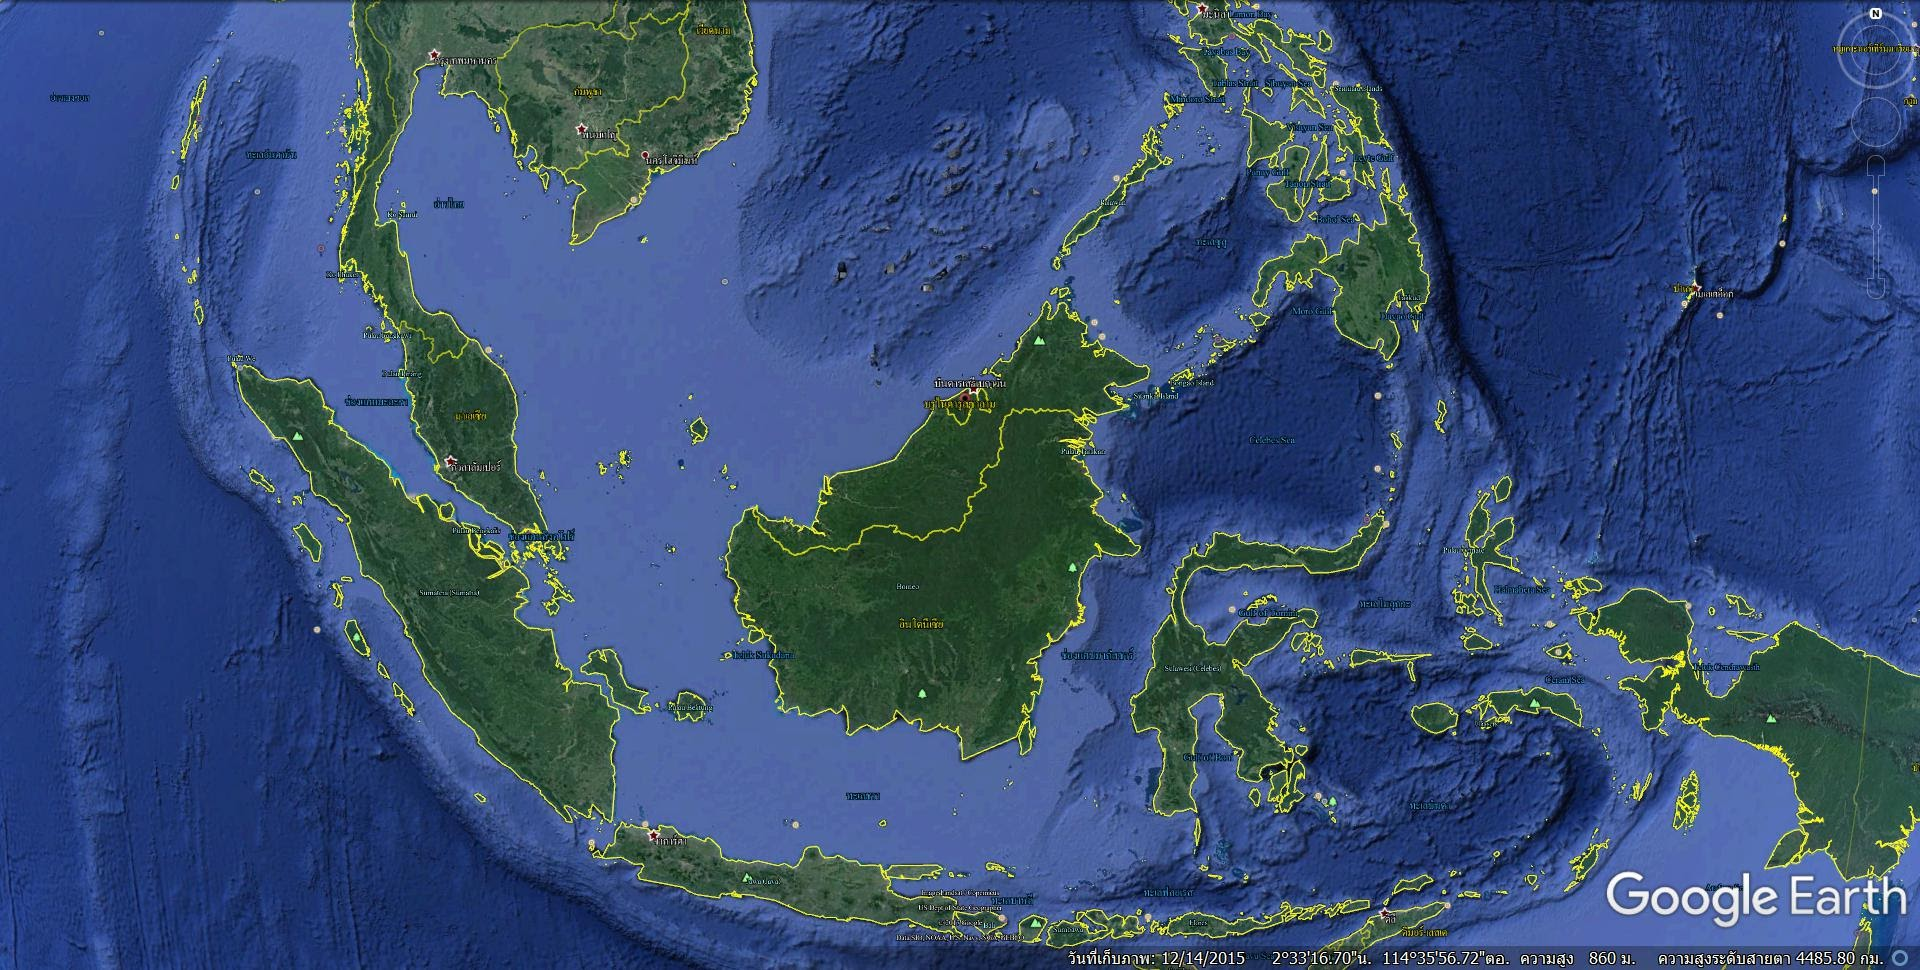 Google earth asia august 6 2017 httpsgoomapsvw6lk5uzic72 brunei httpsearth googleweb45242486511471962663834446266a18539661417302d35y0h0t gumiabroncs Image collections